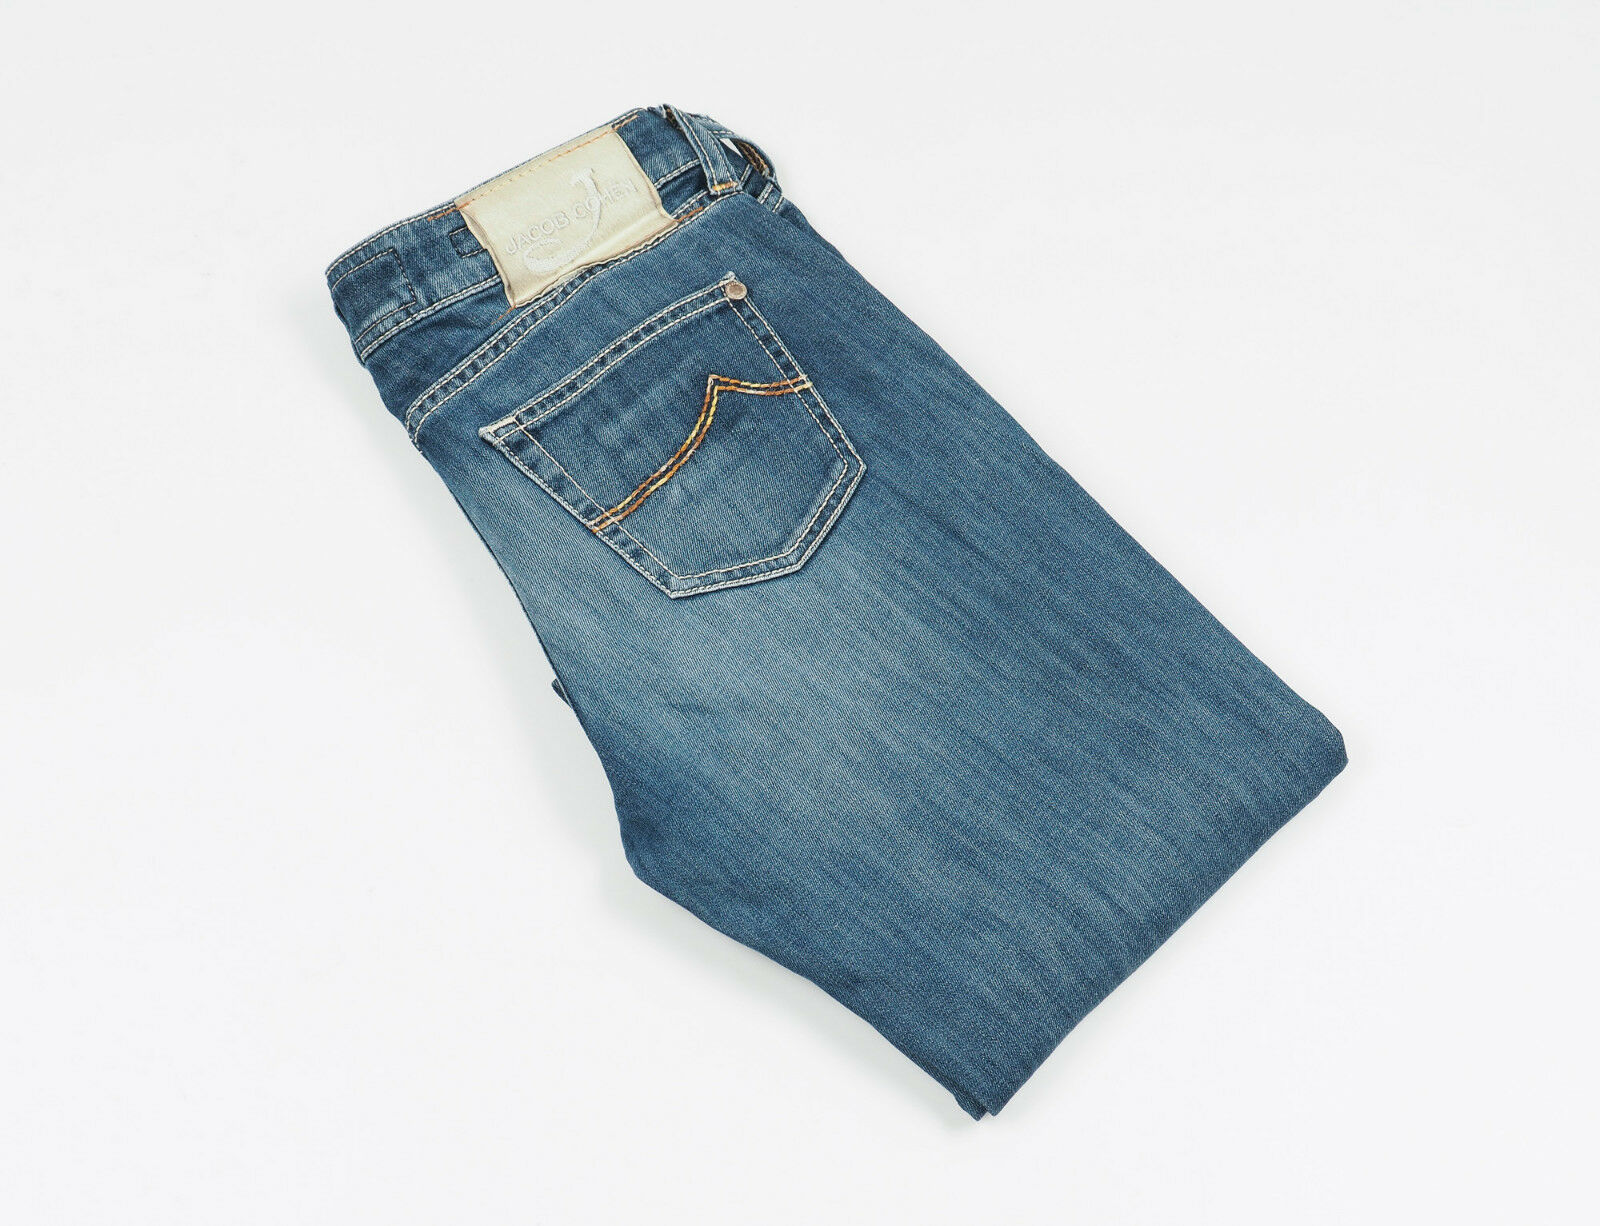 JACOB COHEN JEANS HANDMADE Womens bluee Jeans Size 29  Made in